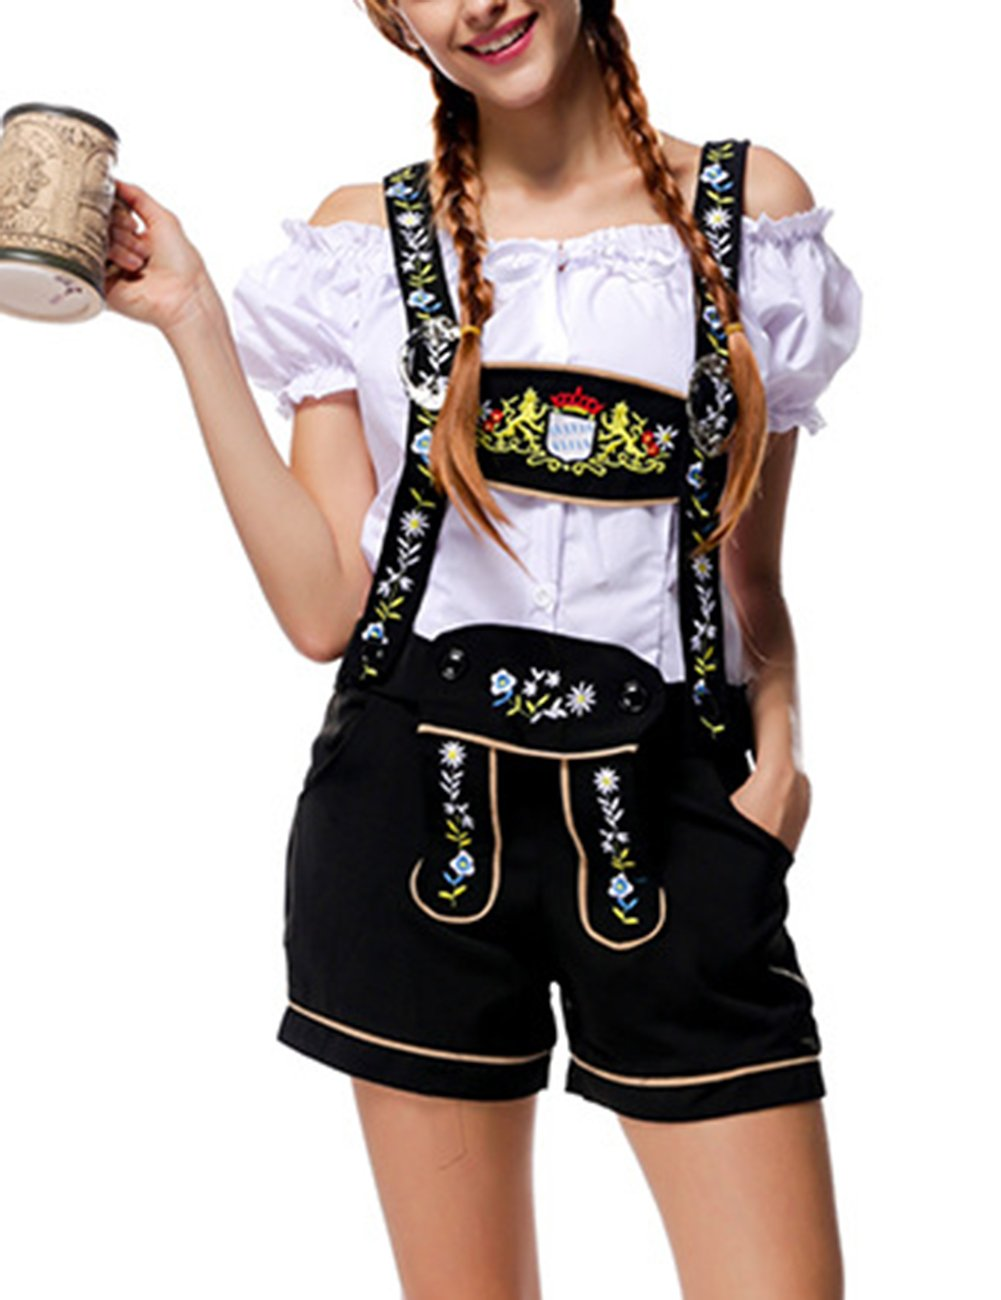 Yiwa Oktoberfest Costumes Women Classic Retro Costumes Sexy Charming Off Shoulder Beer Festival Tops + Suspenders Pants by Yiwa (Image #3)